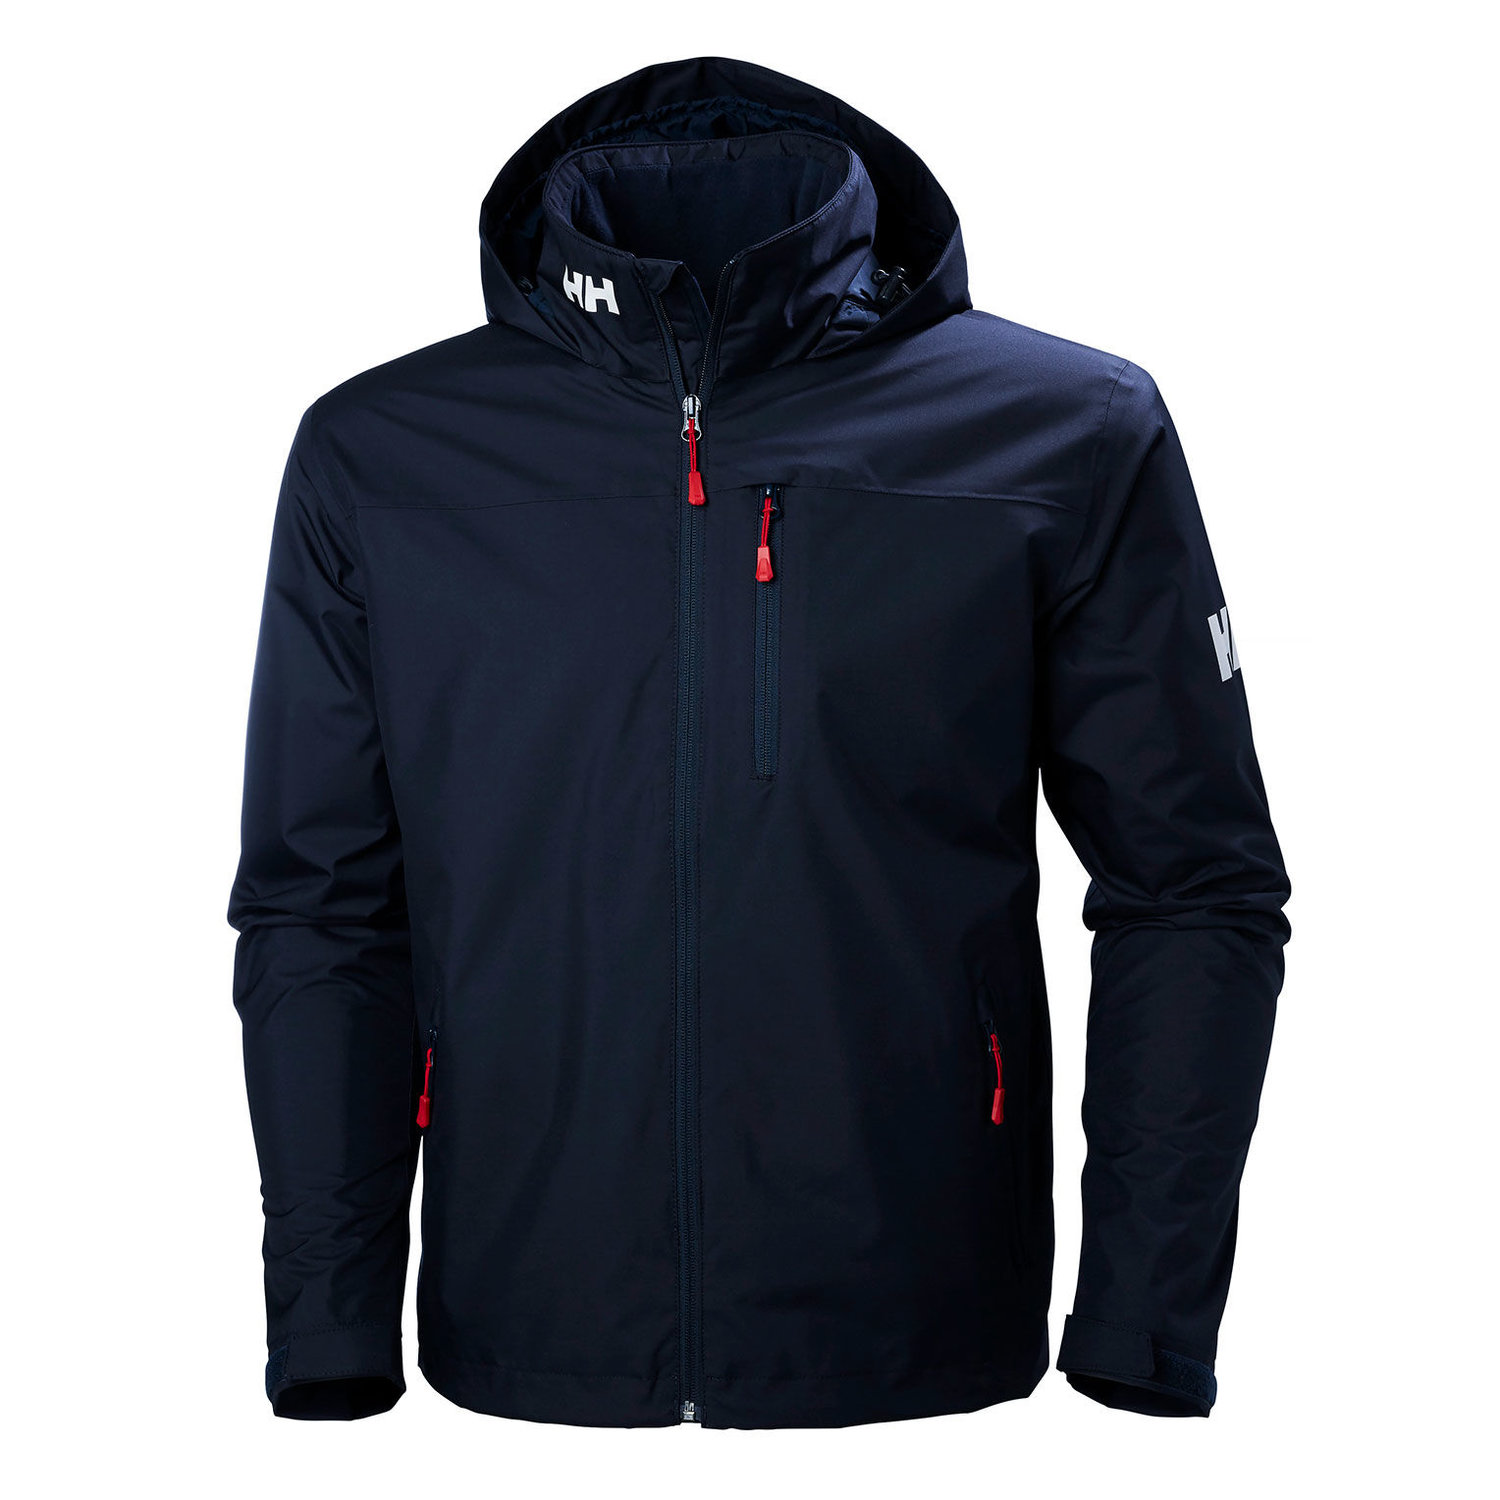 2cde6f50 Helly Hansen Men's Crew Hooded Midlayer Jacket